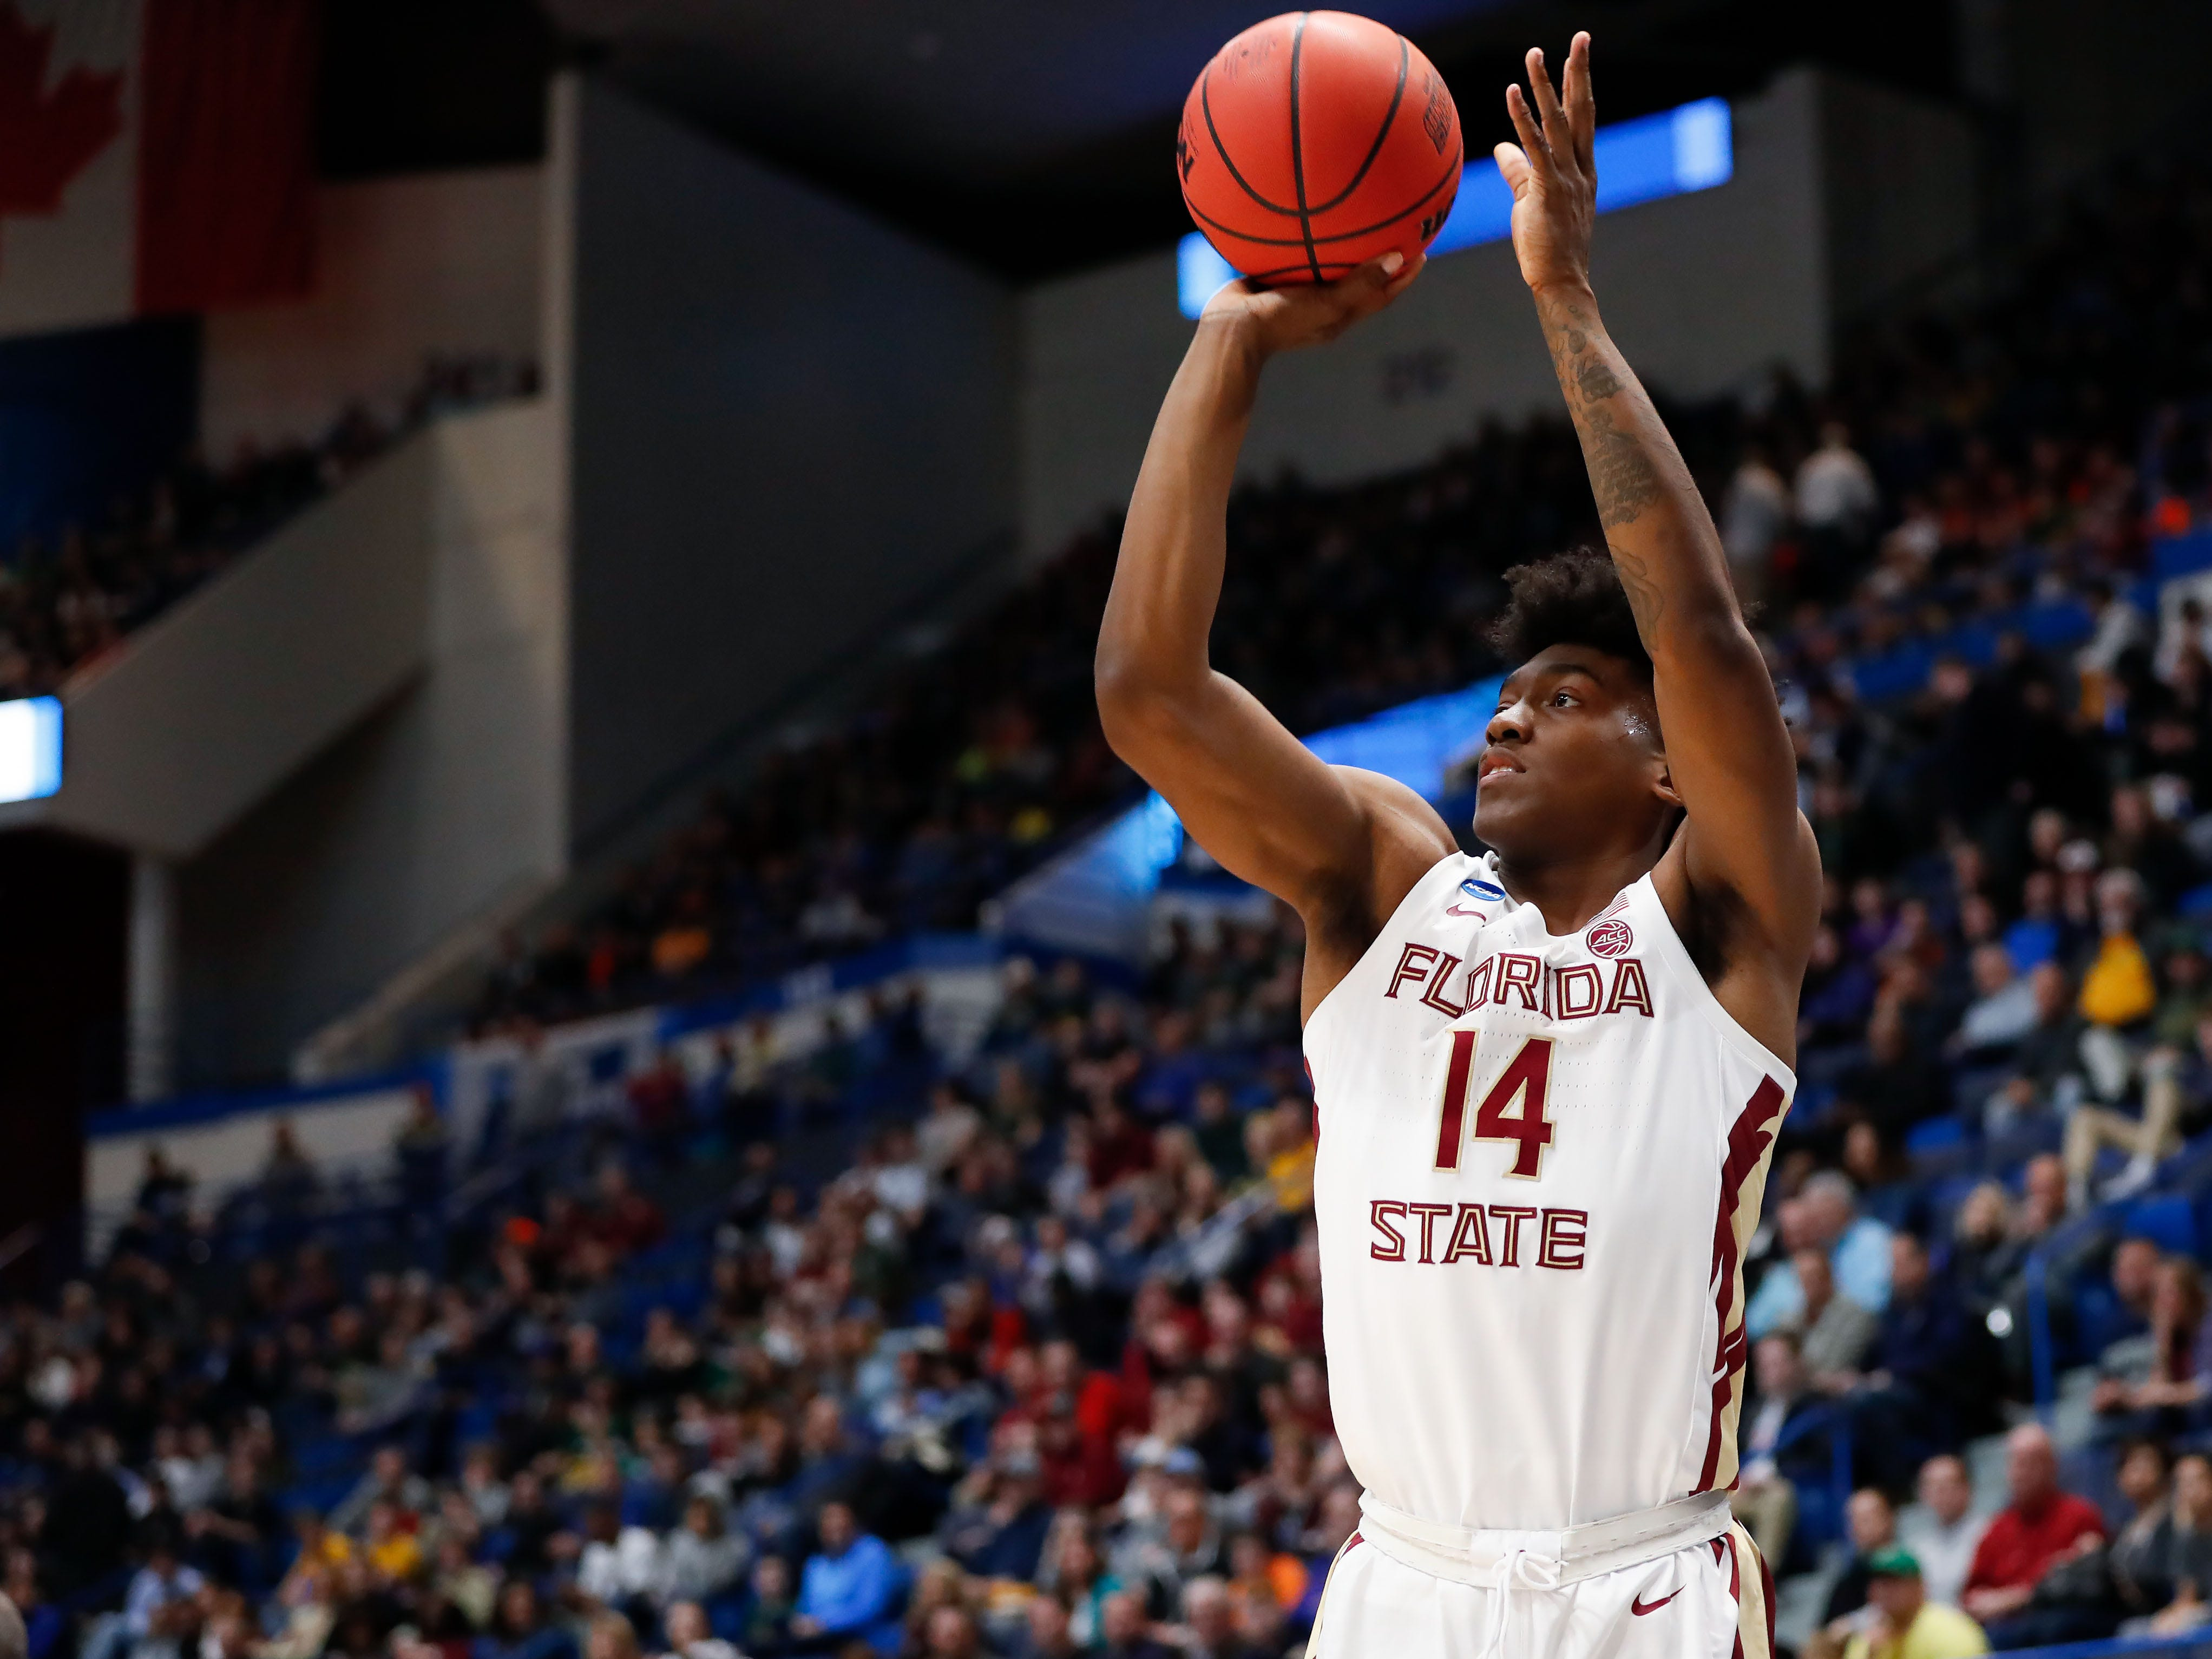 Mar 21, 2019; Hartford, CT, USA; Florida State Seminoles guard Terance Mann (14) attempts a three point basket against against the Vermont Catamounts during the first half of a game in the first round of the 2019 NCAA Tournament at XL Center. Mandatory Credit: David Butler II-USA TODAY Sports